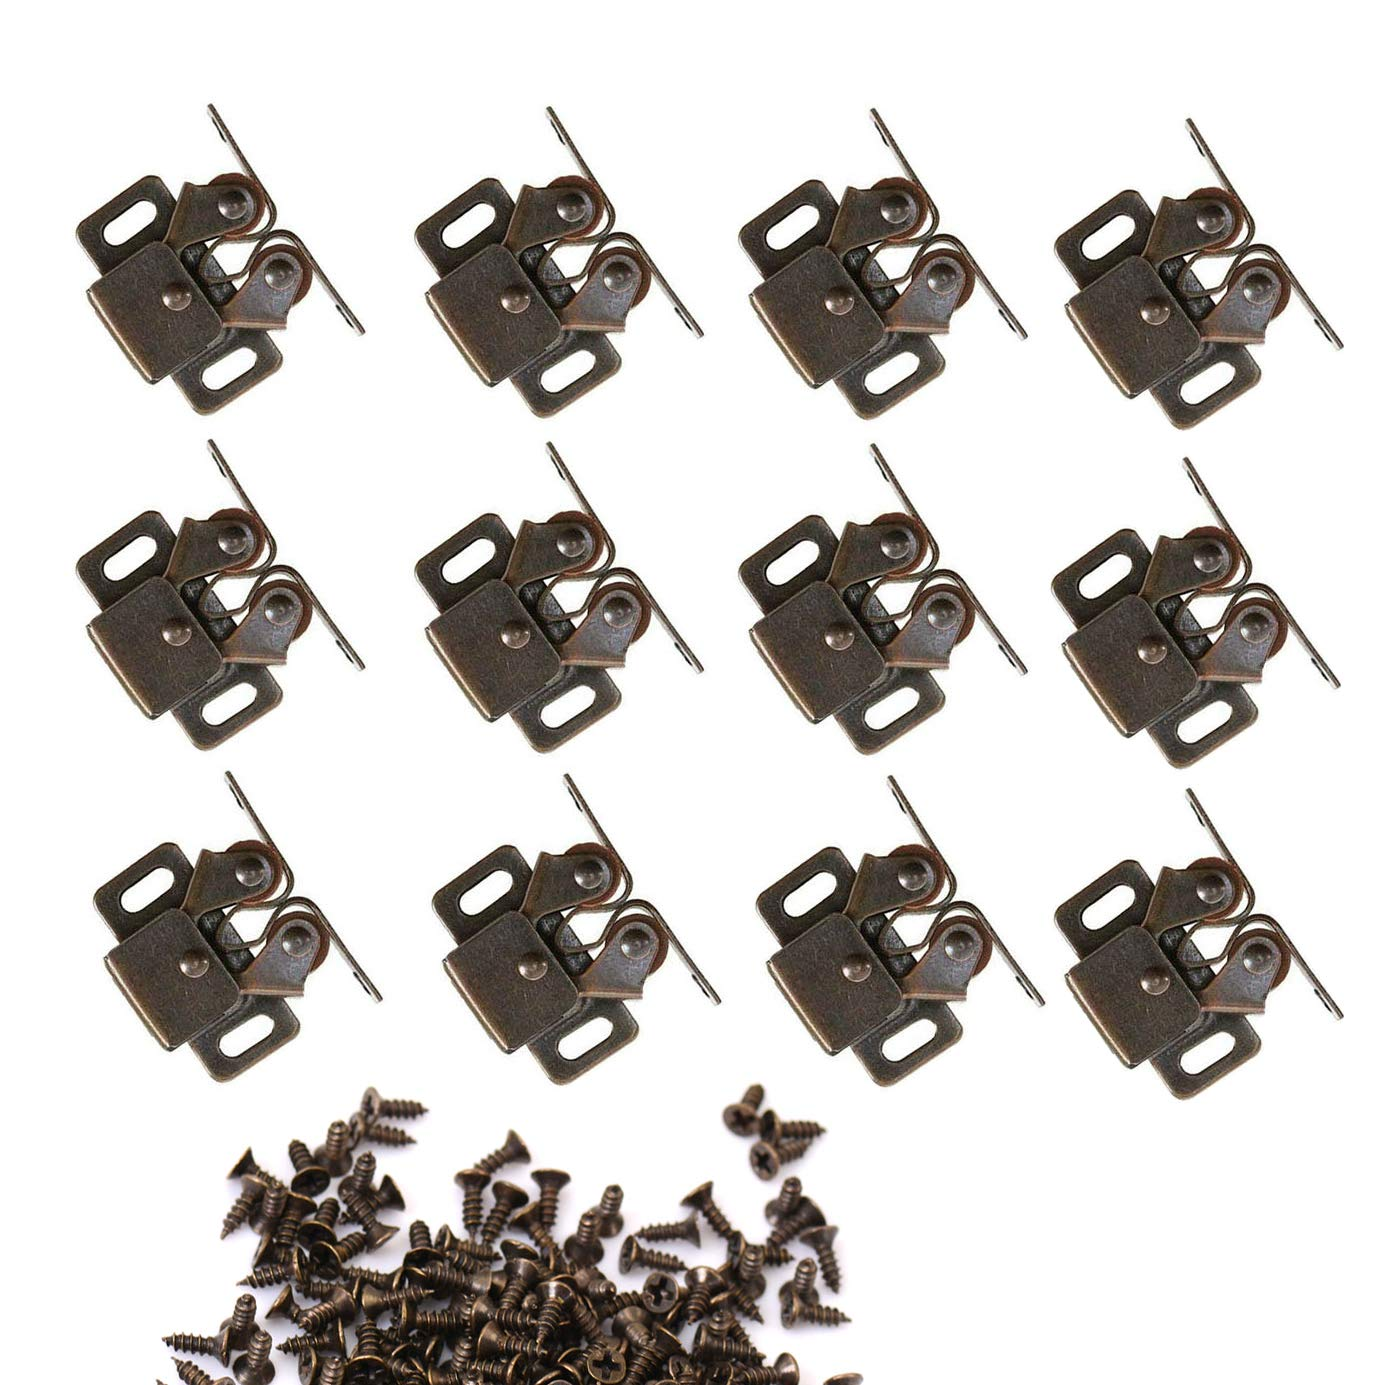 NewZC Double Roller Catch 12 Pack Twin Cupboard Latch Strong Hold Cabinet Door Catches - Antique Bronzed